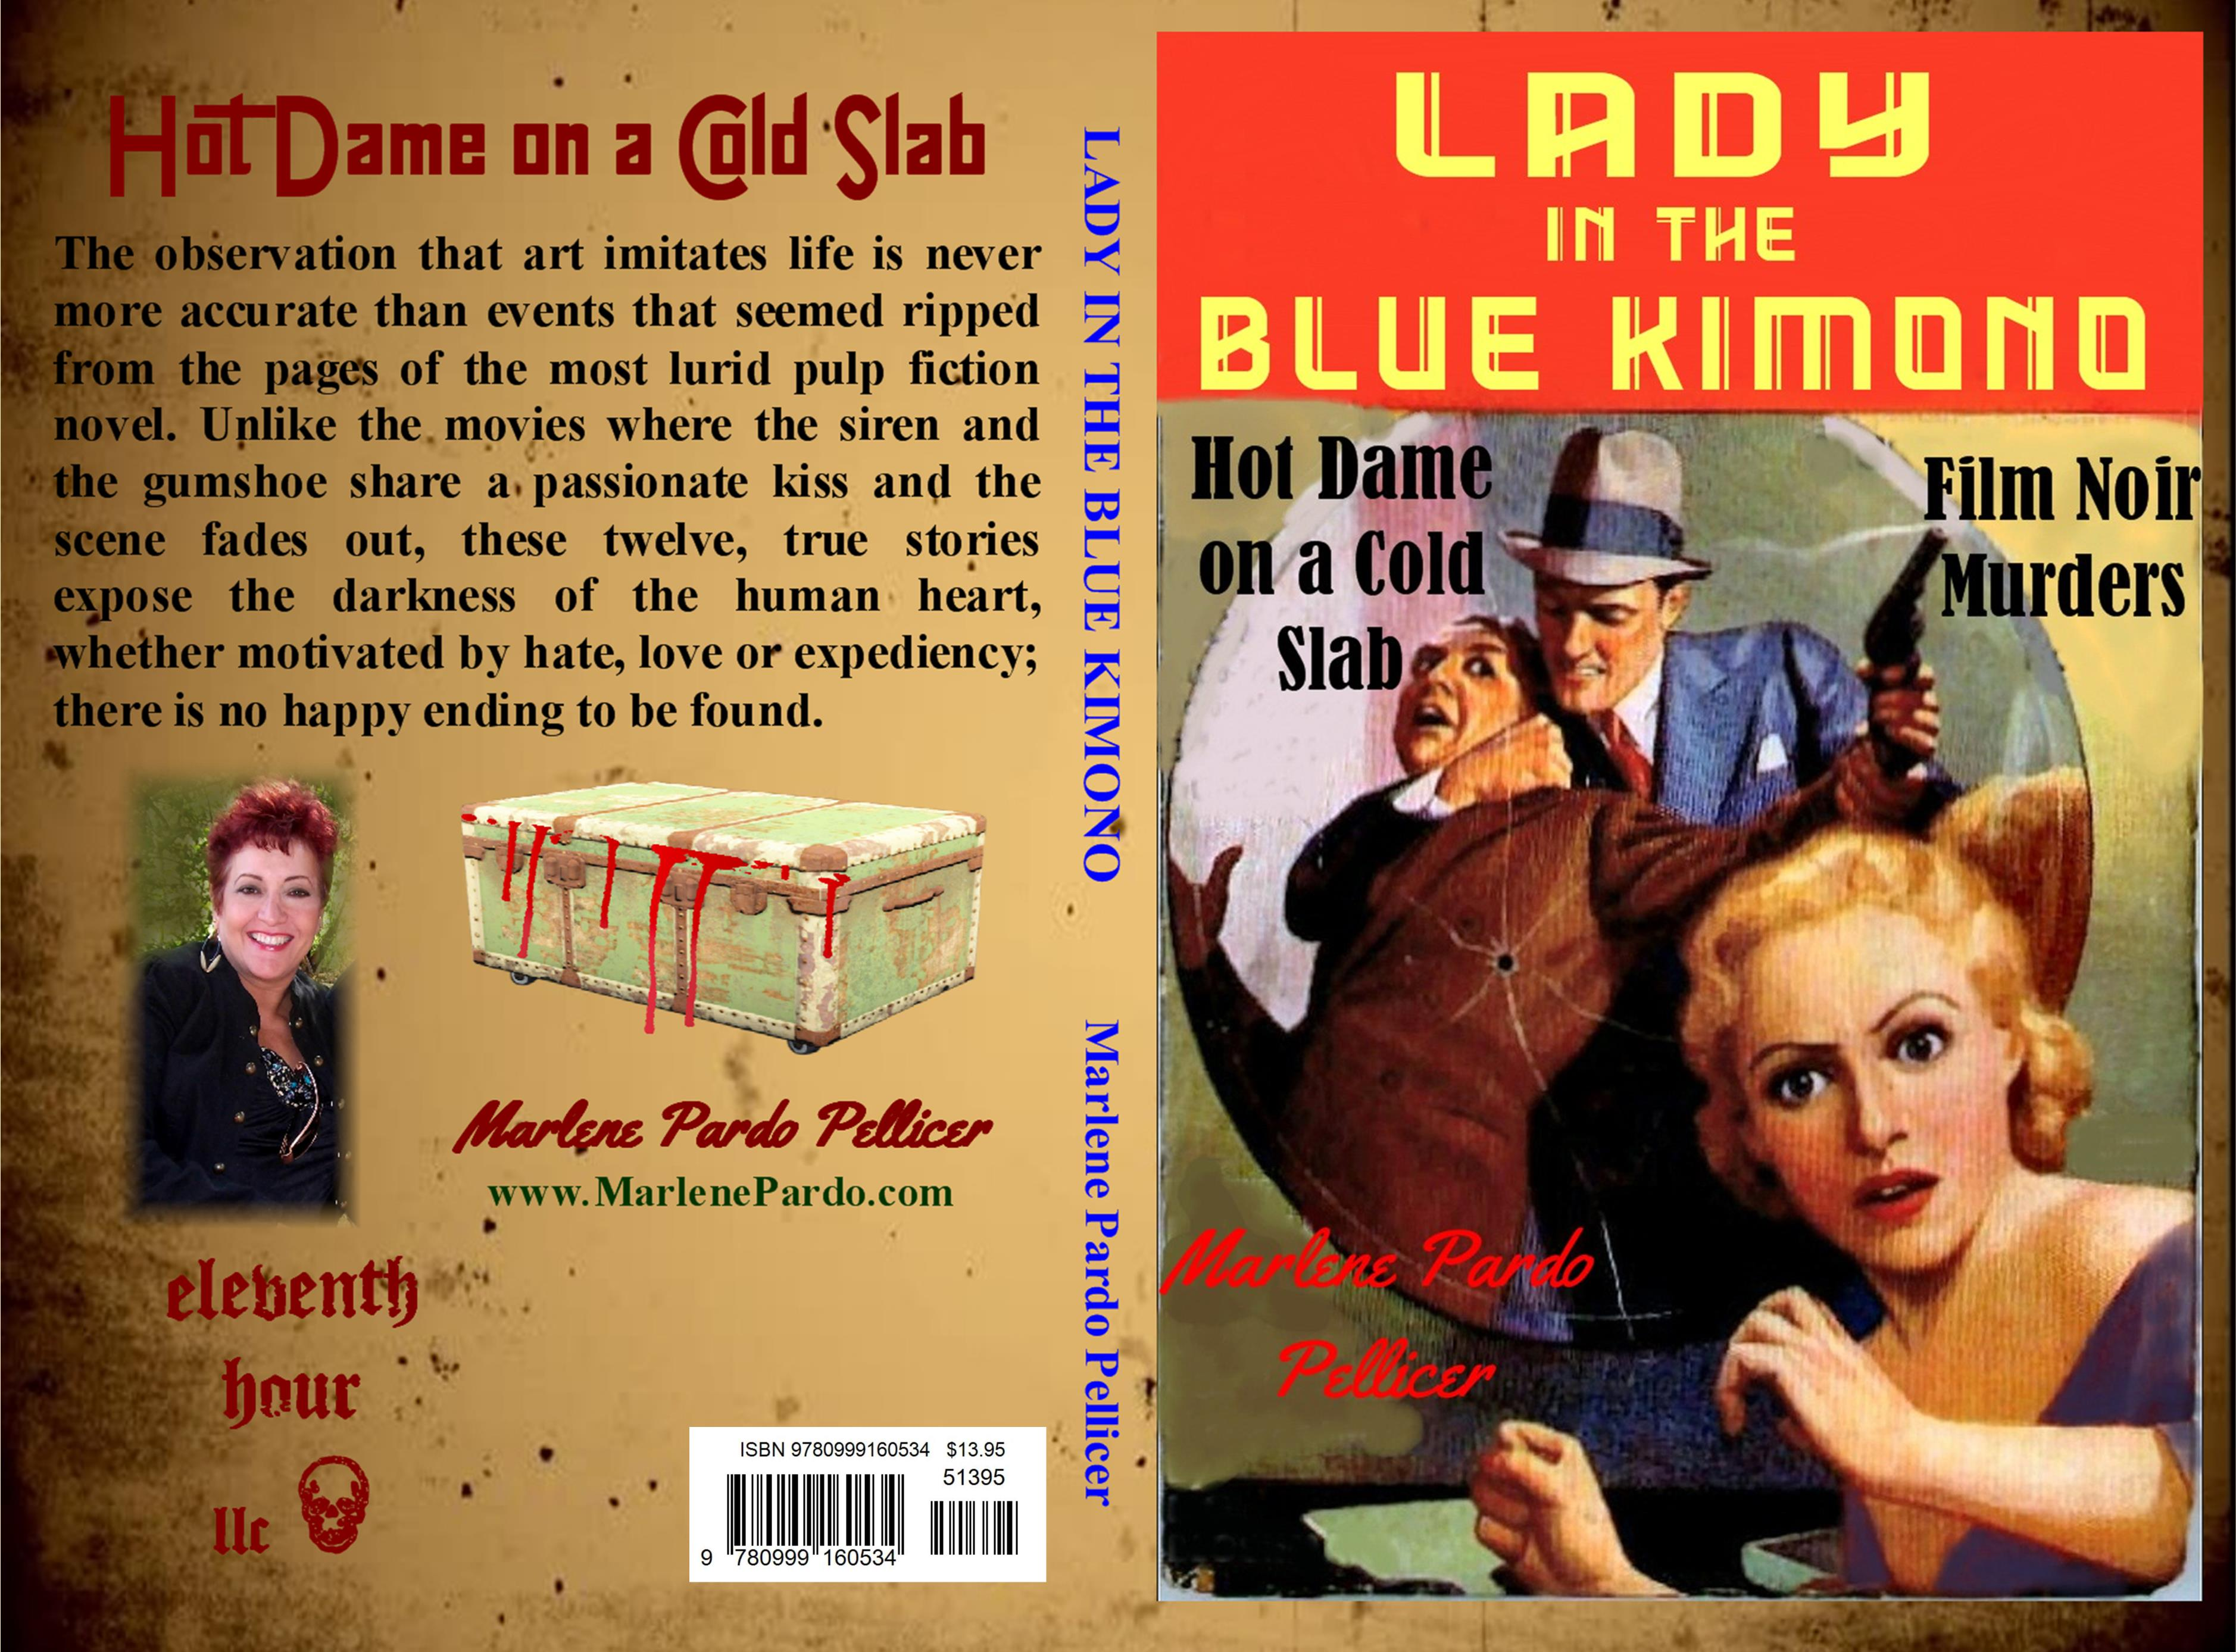 Lady in the Blue Kimono cover image